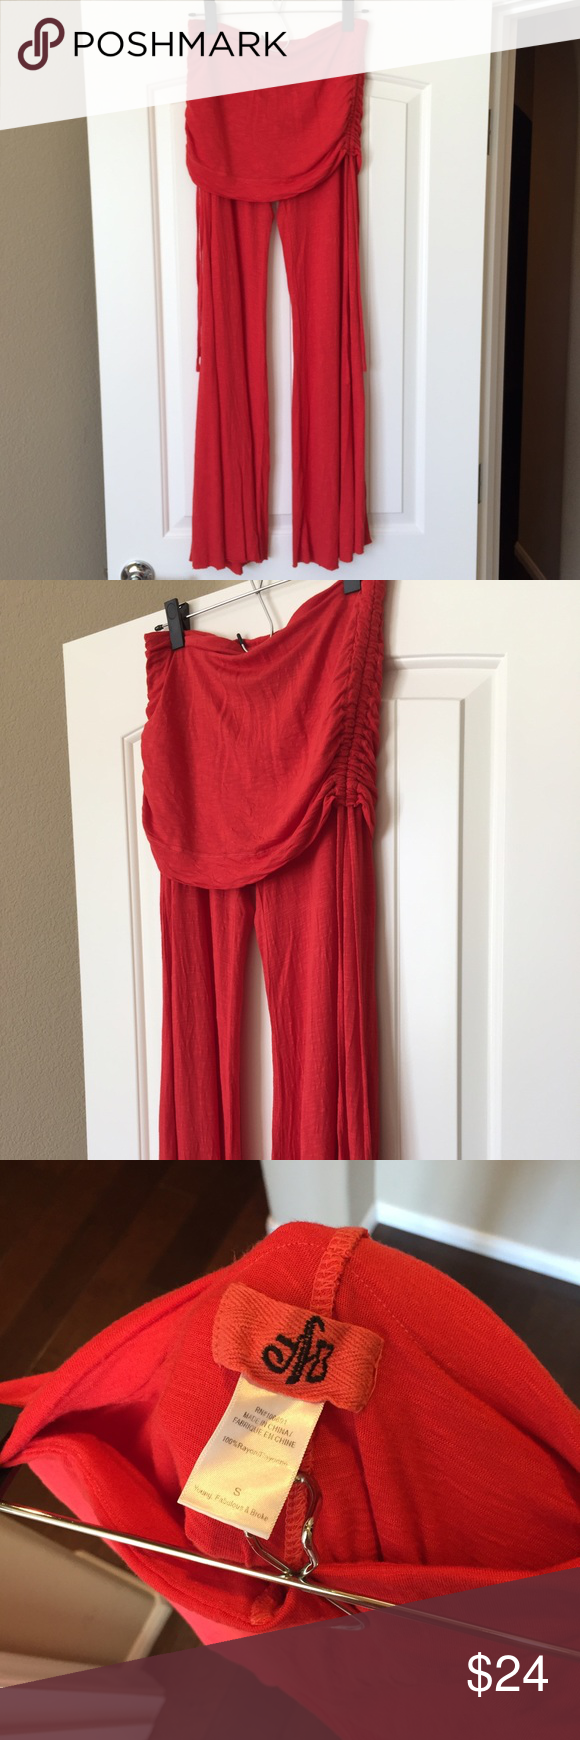 ✨Young Fabulous & Broke Sierra Pant✨ Young Fabulous & Broke Sierra Pant in red. Only worn a few times, good condition. Ruched sides with drawstrings. Raw hem on the bottom. No trades. Young Fabulous & Broke Pants